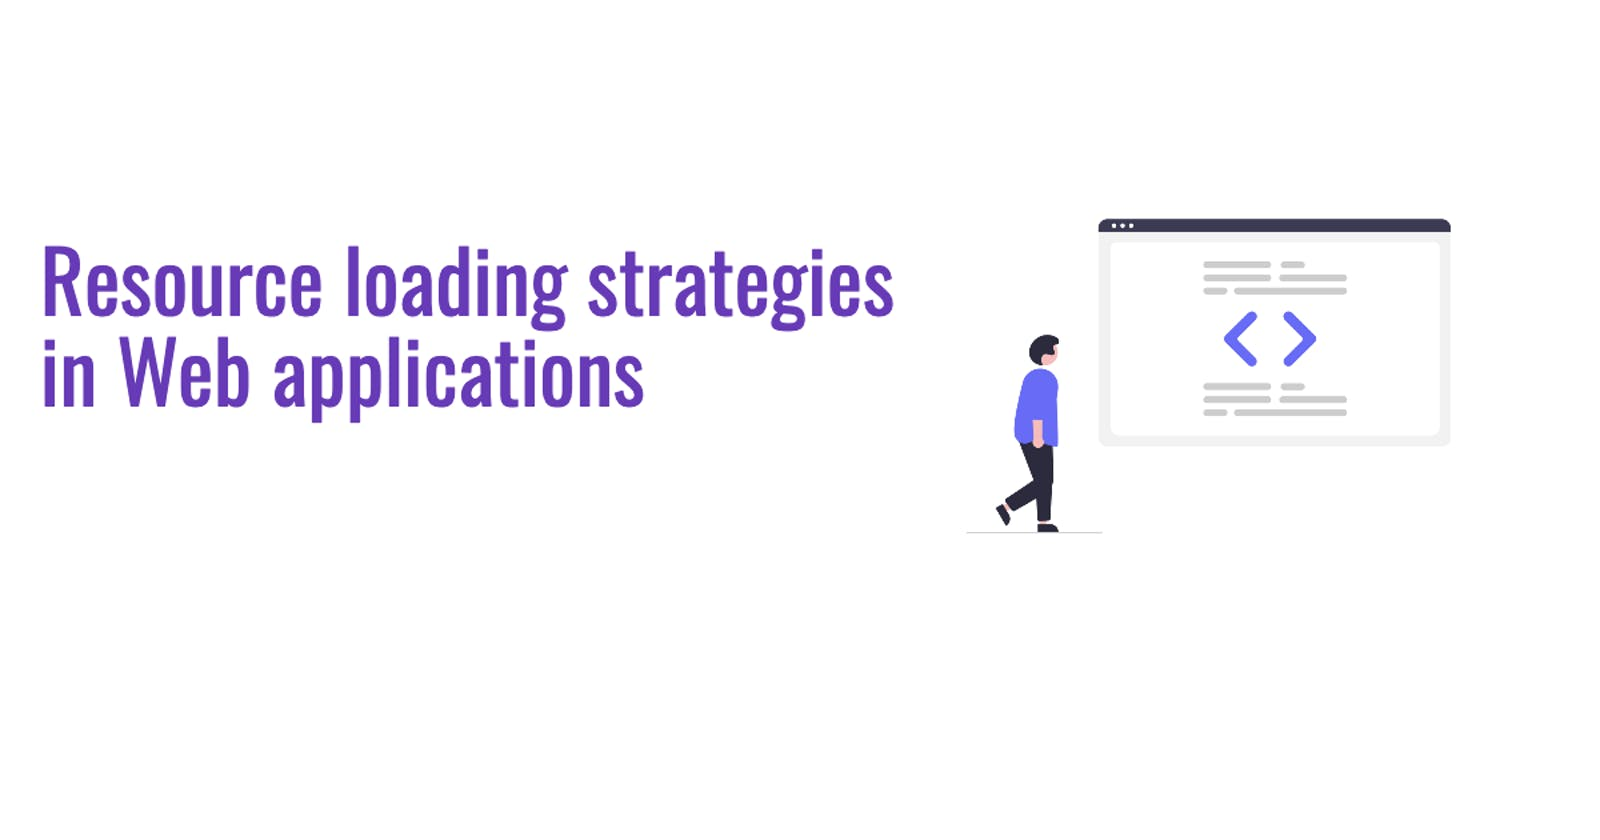 Resource loading strategies in Web applications